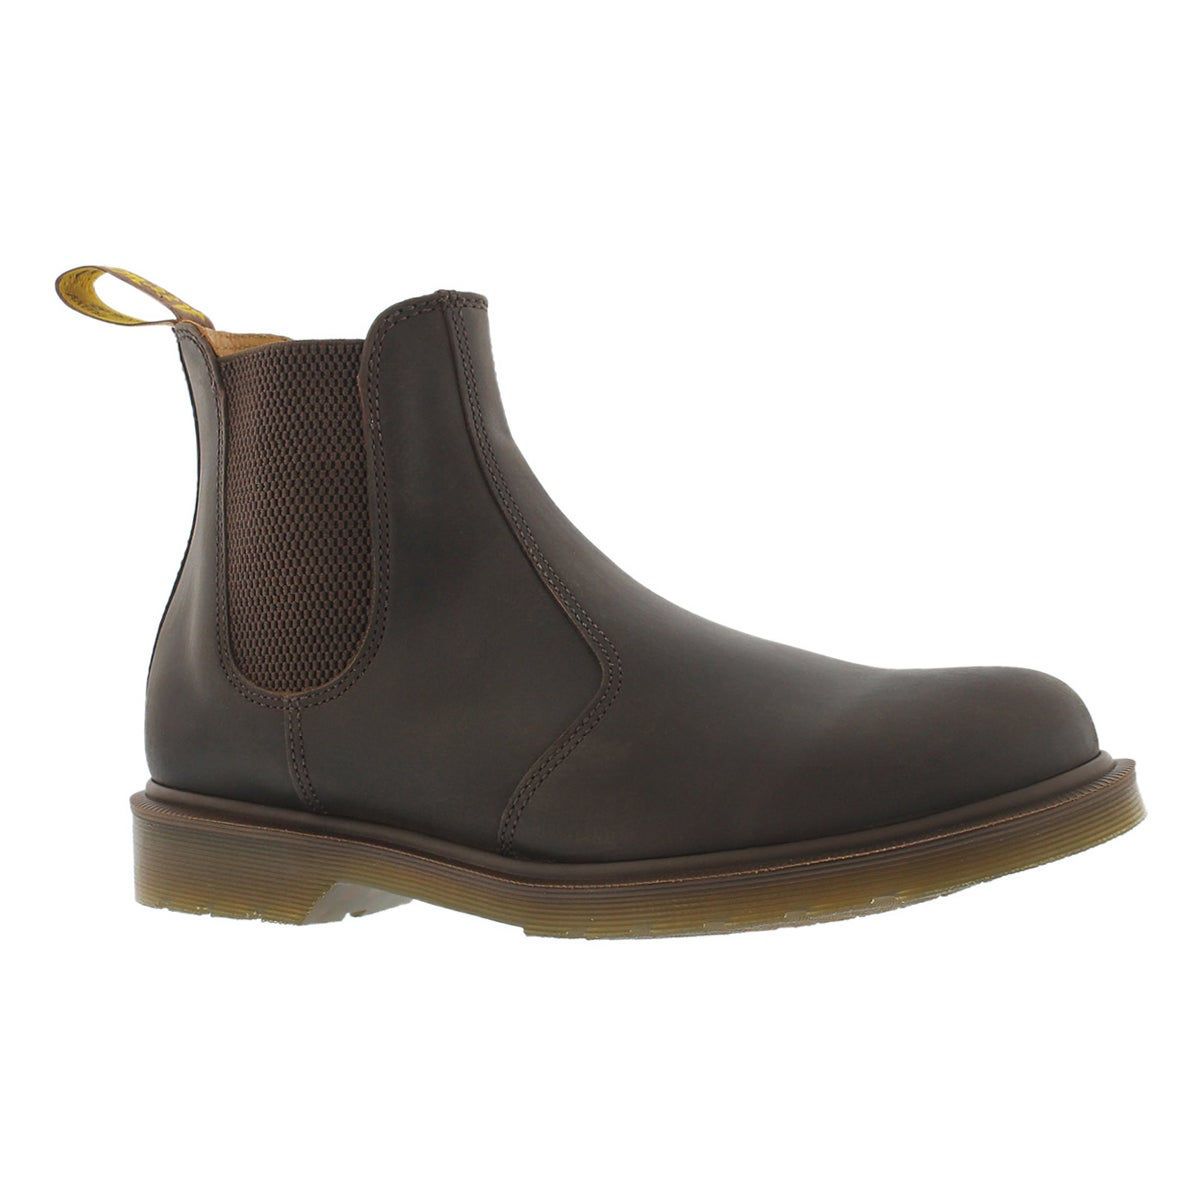 better price for fashion styles moderate cost Men's RUGGED 2976 gaucho chelsea boots